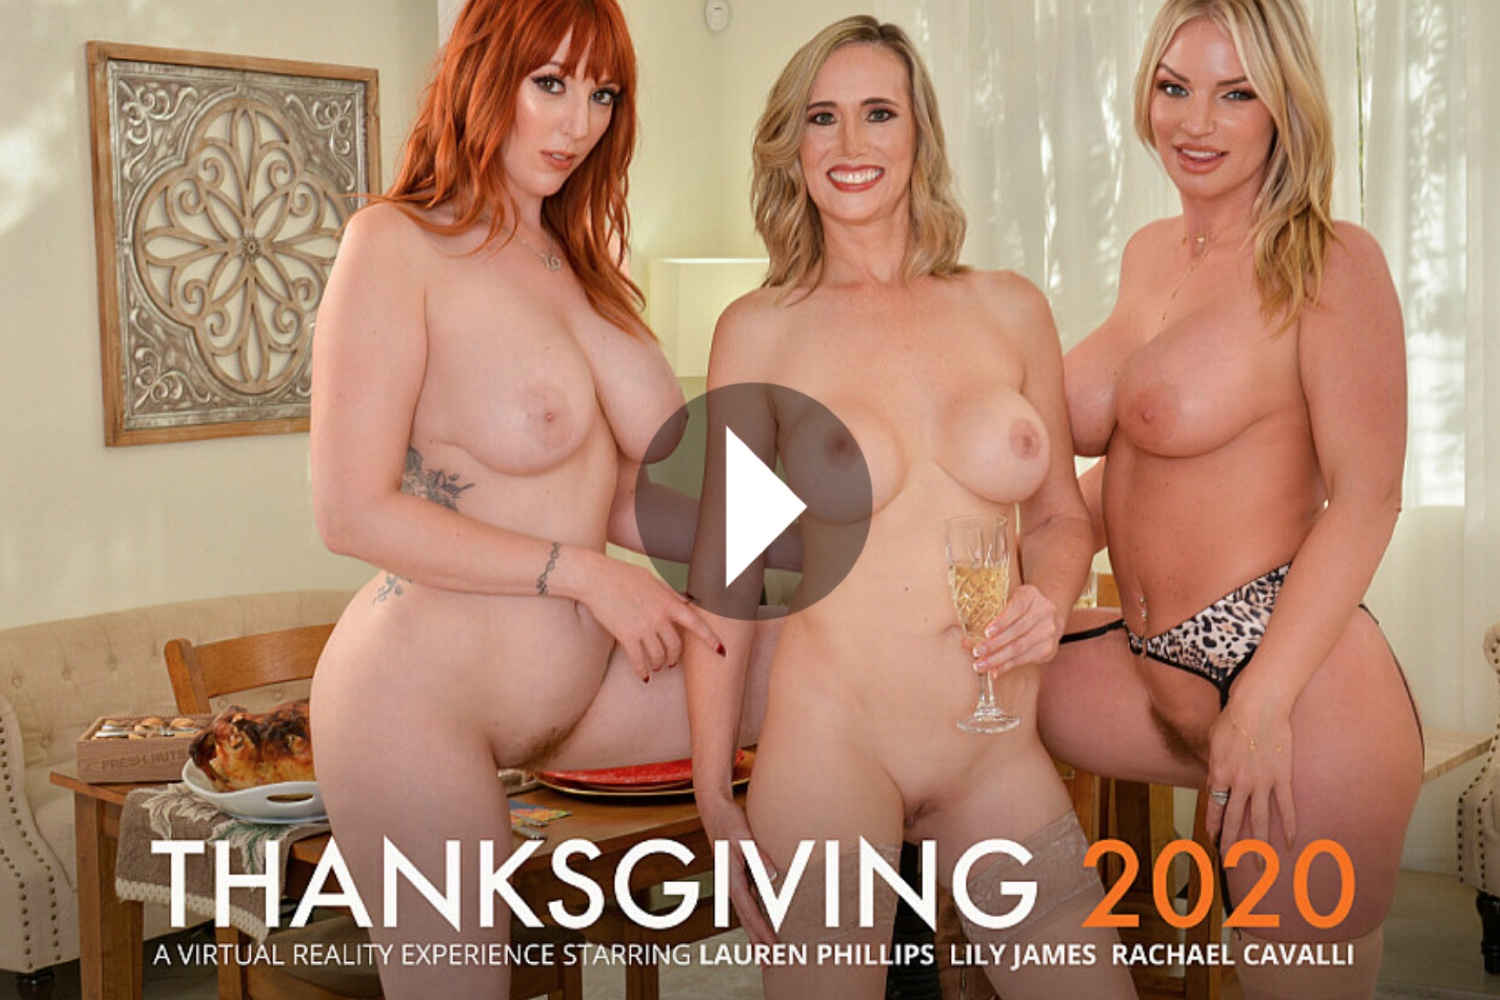 Thanksgiving 2020 - Lilly James VR Porn - Rachael Cavalli VR Porn - Lauren Phillips VR Porn - Lilly James Virtual Reality Porn - Rachael Cavalli Virtual Reality Porn - Lauren Phillips Virtual Reality Porn - Lilly James Stockings - Rachael Cavalli Stockings